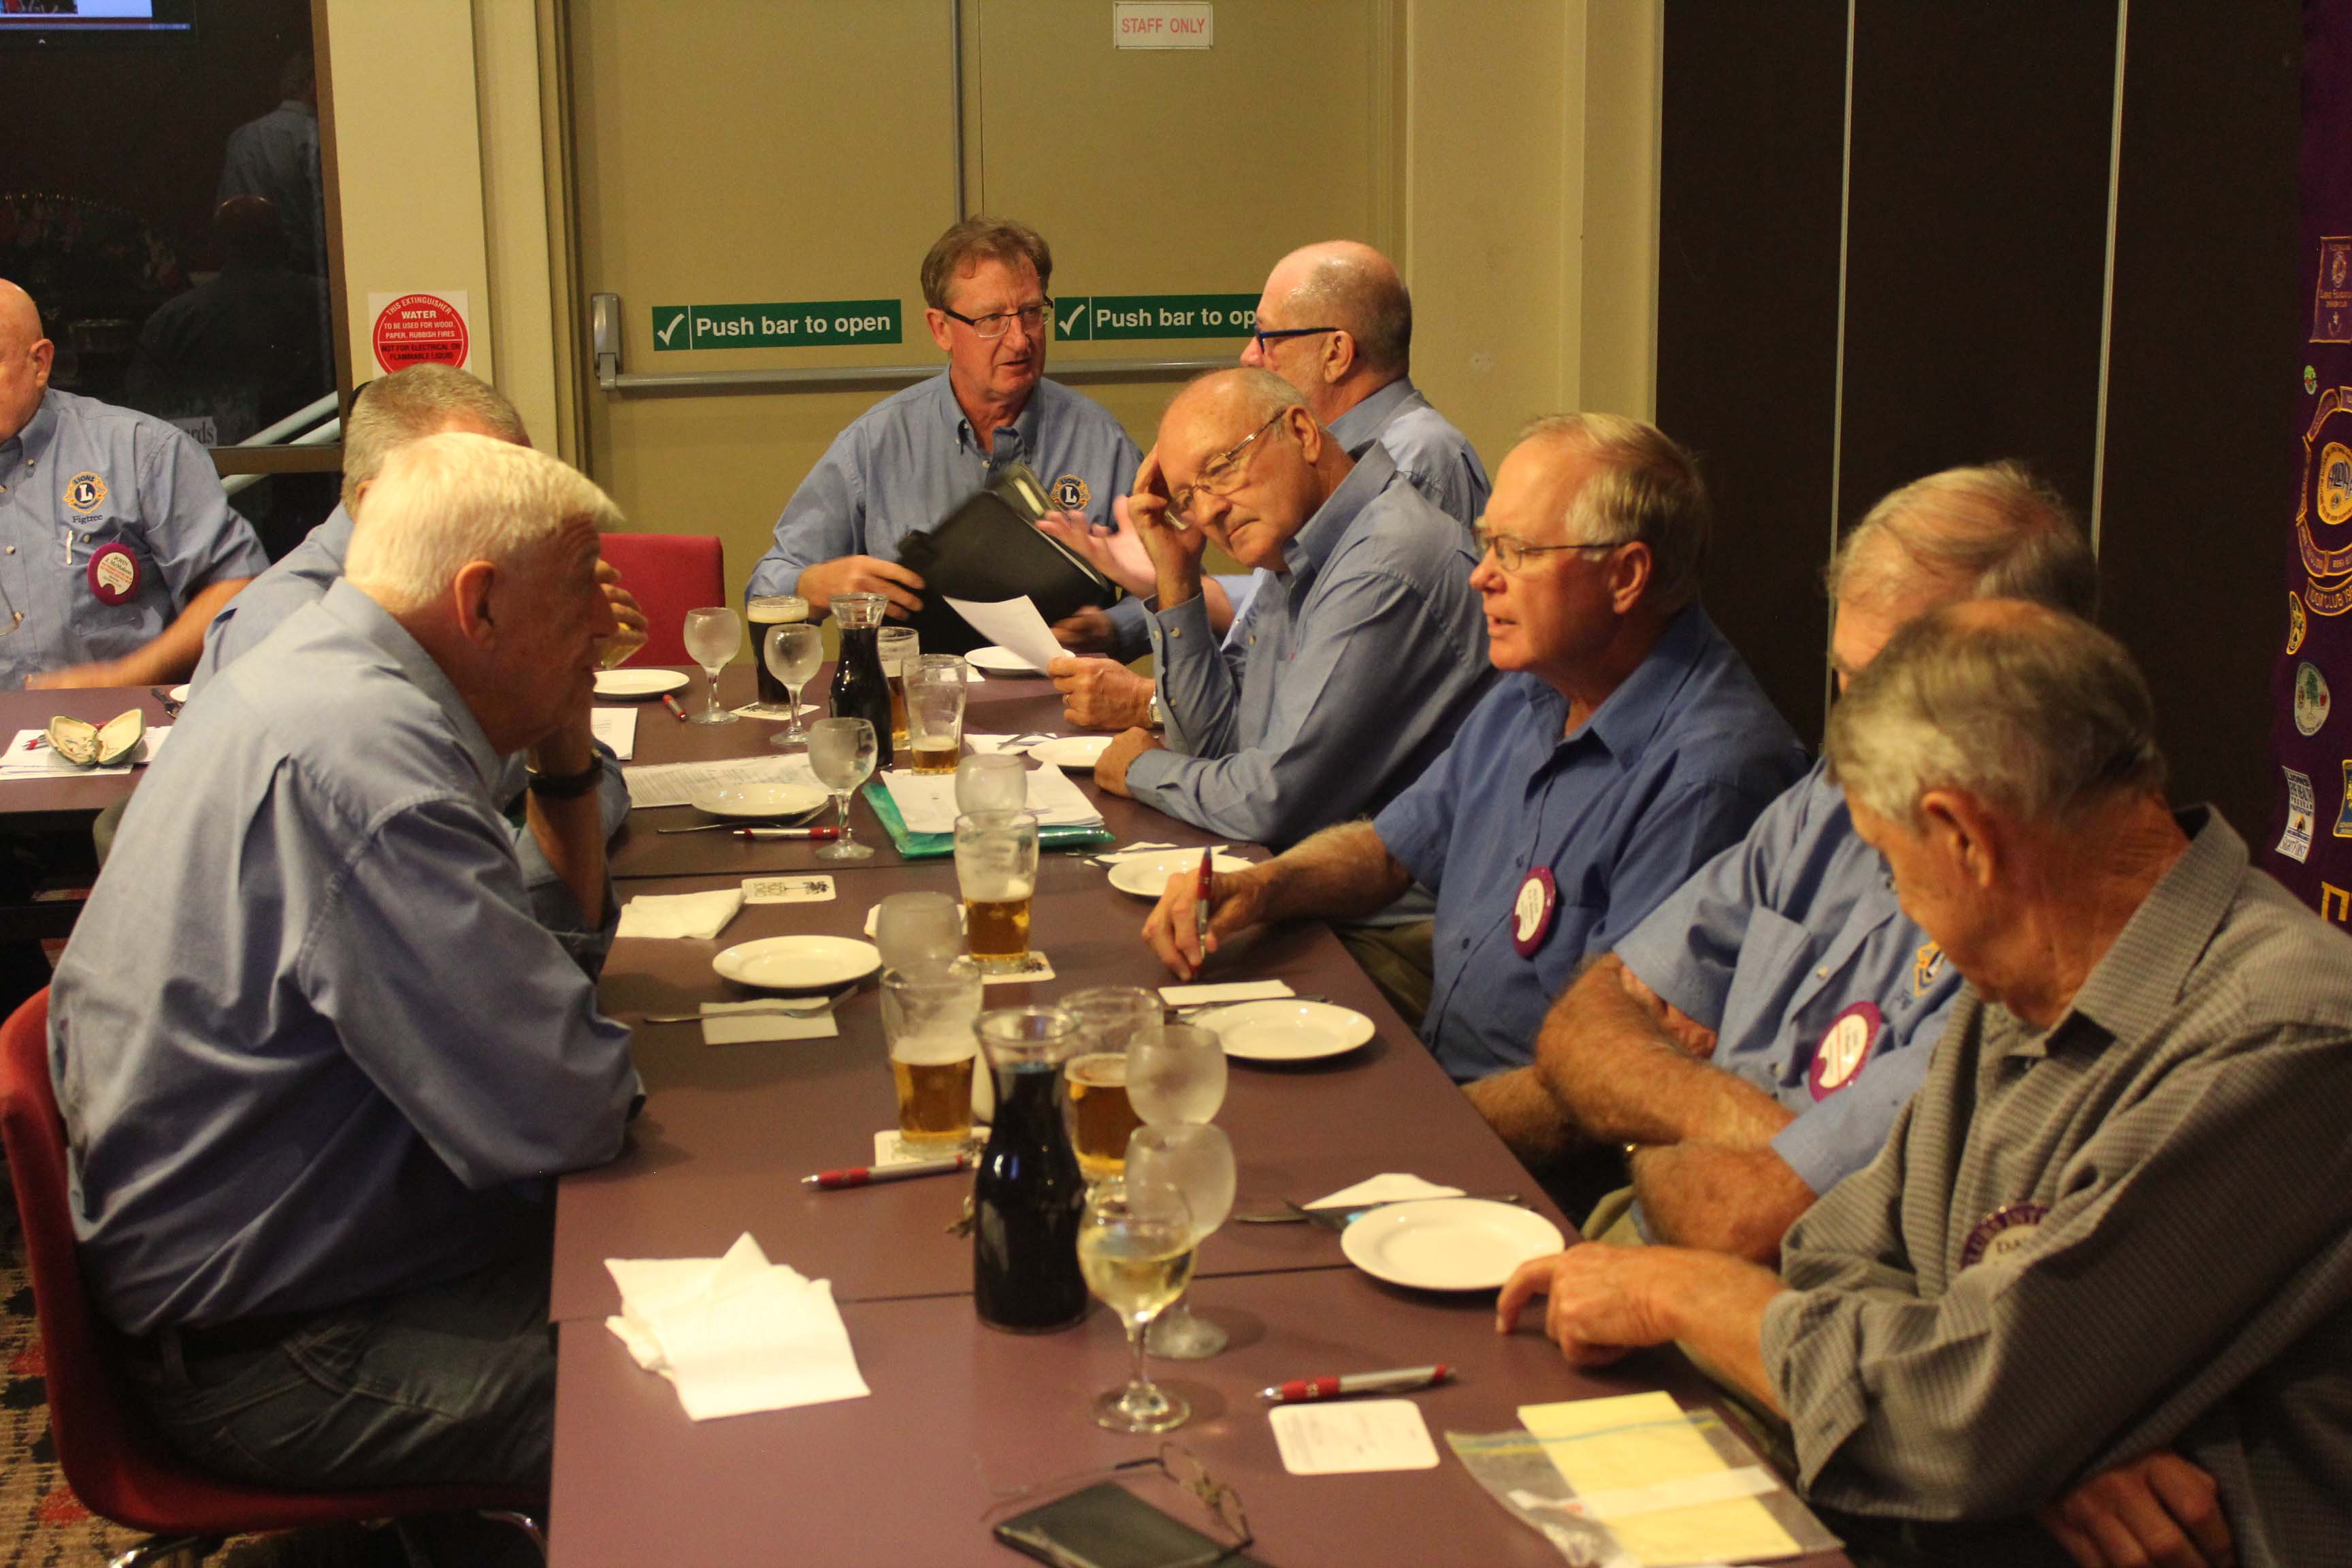 Lions club members seated at table